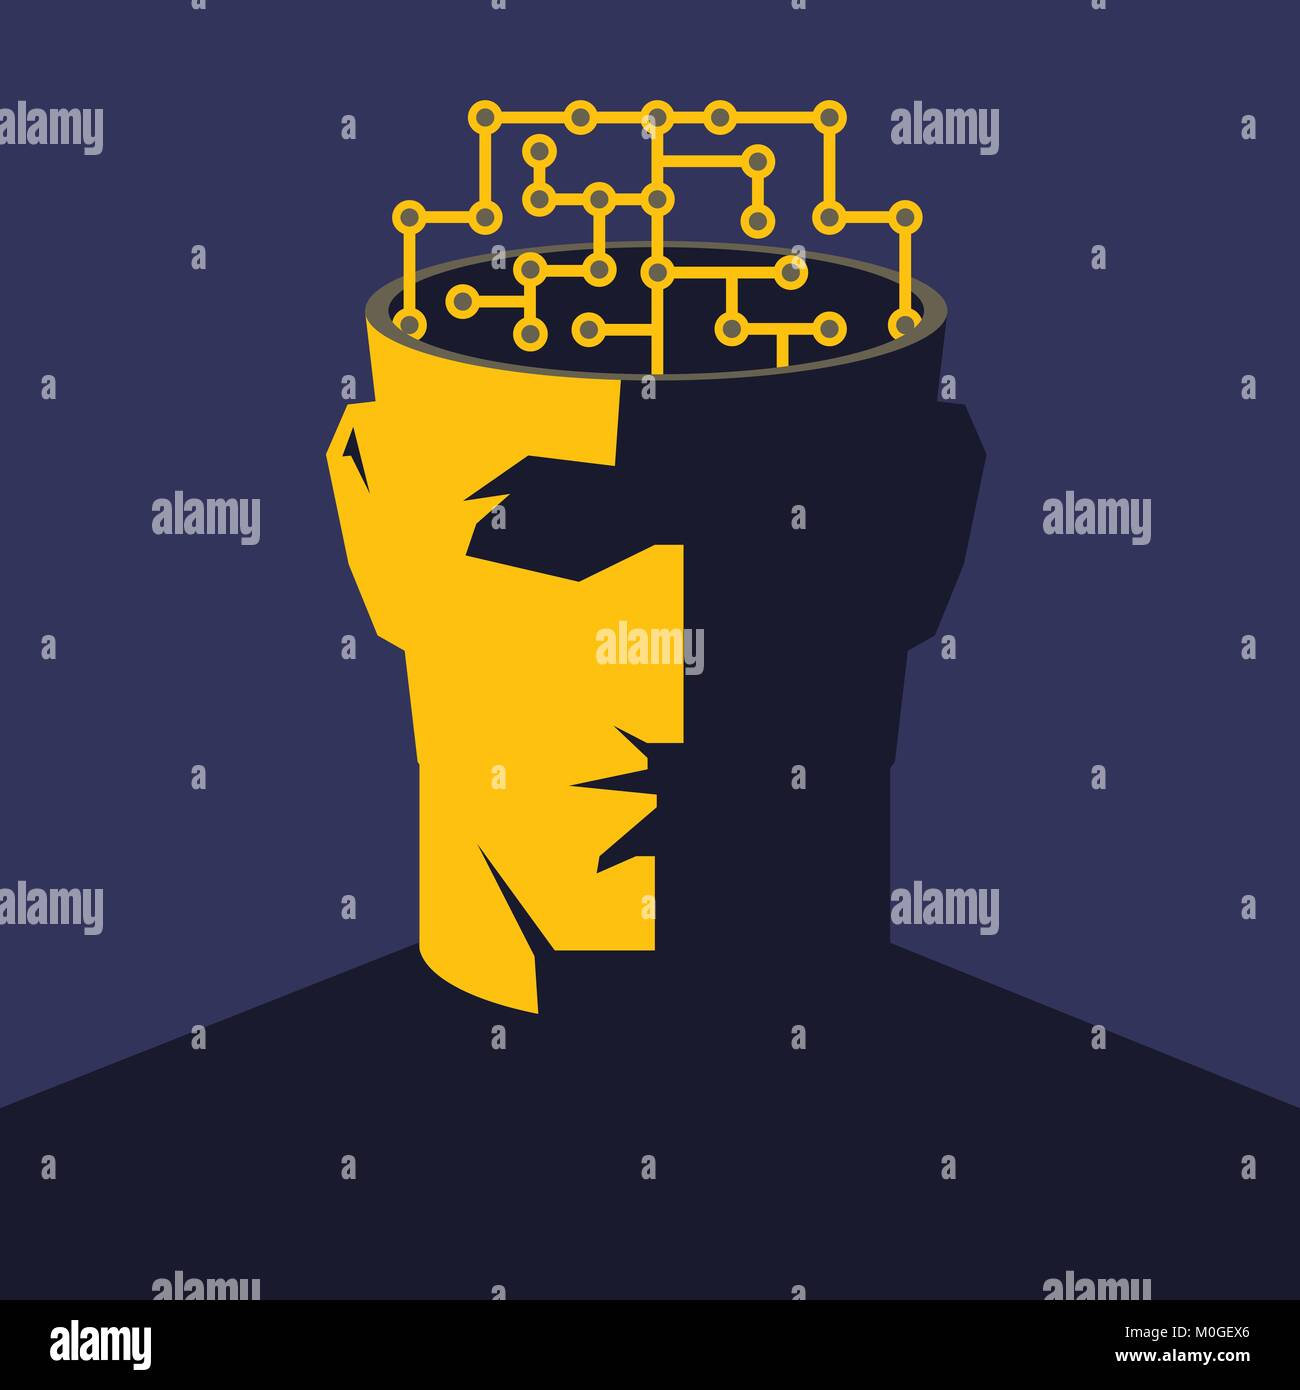 Male open head with cyberbrain inside. Artificial intelligence concept illustration. - Stock Image